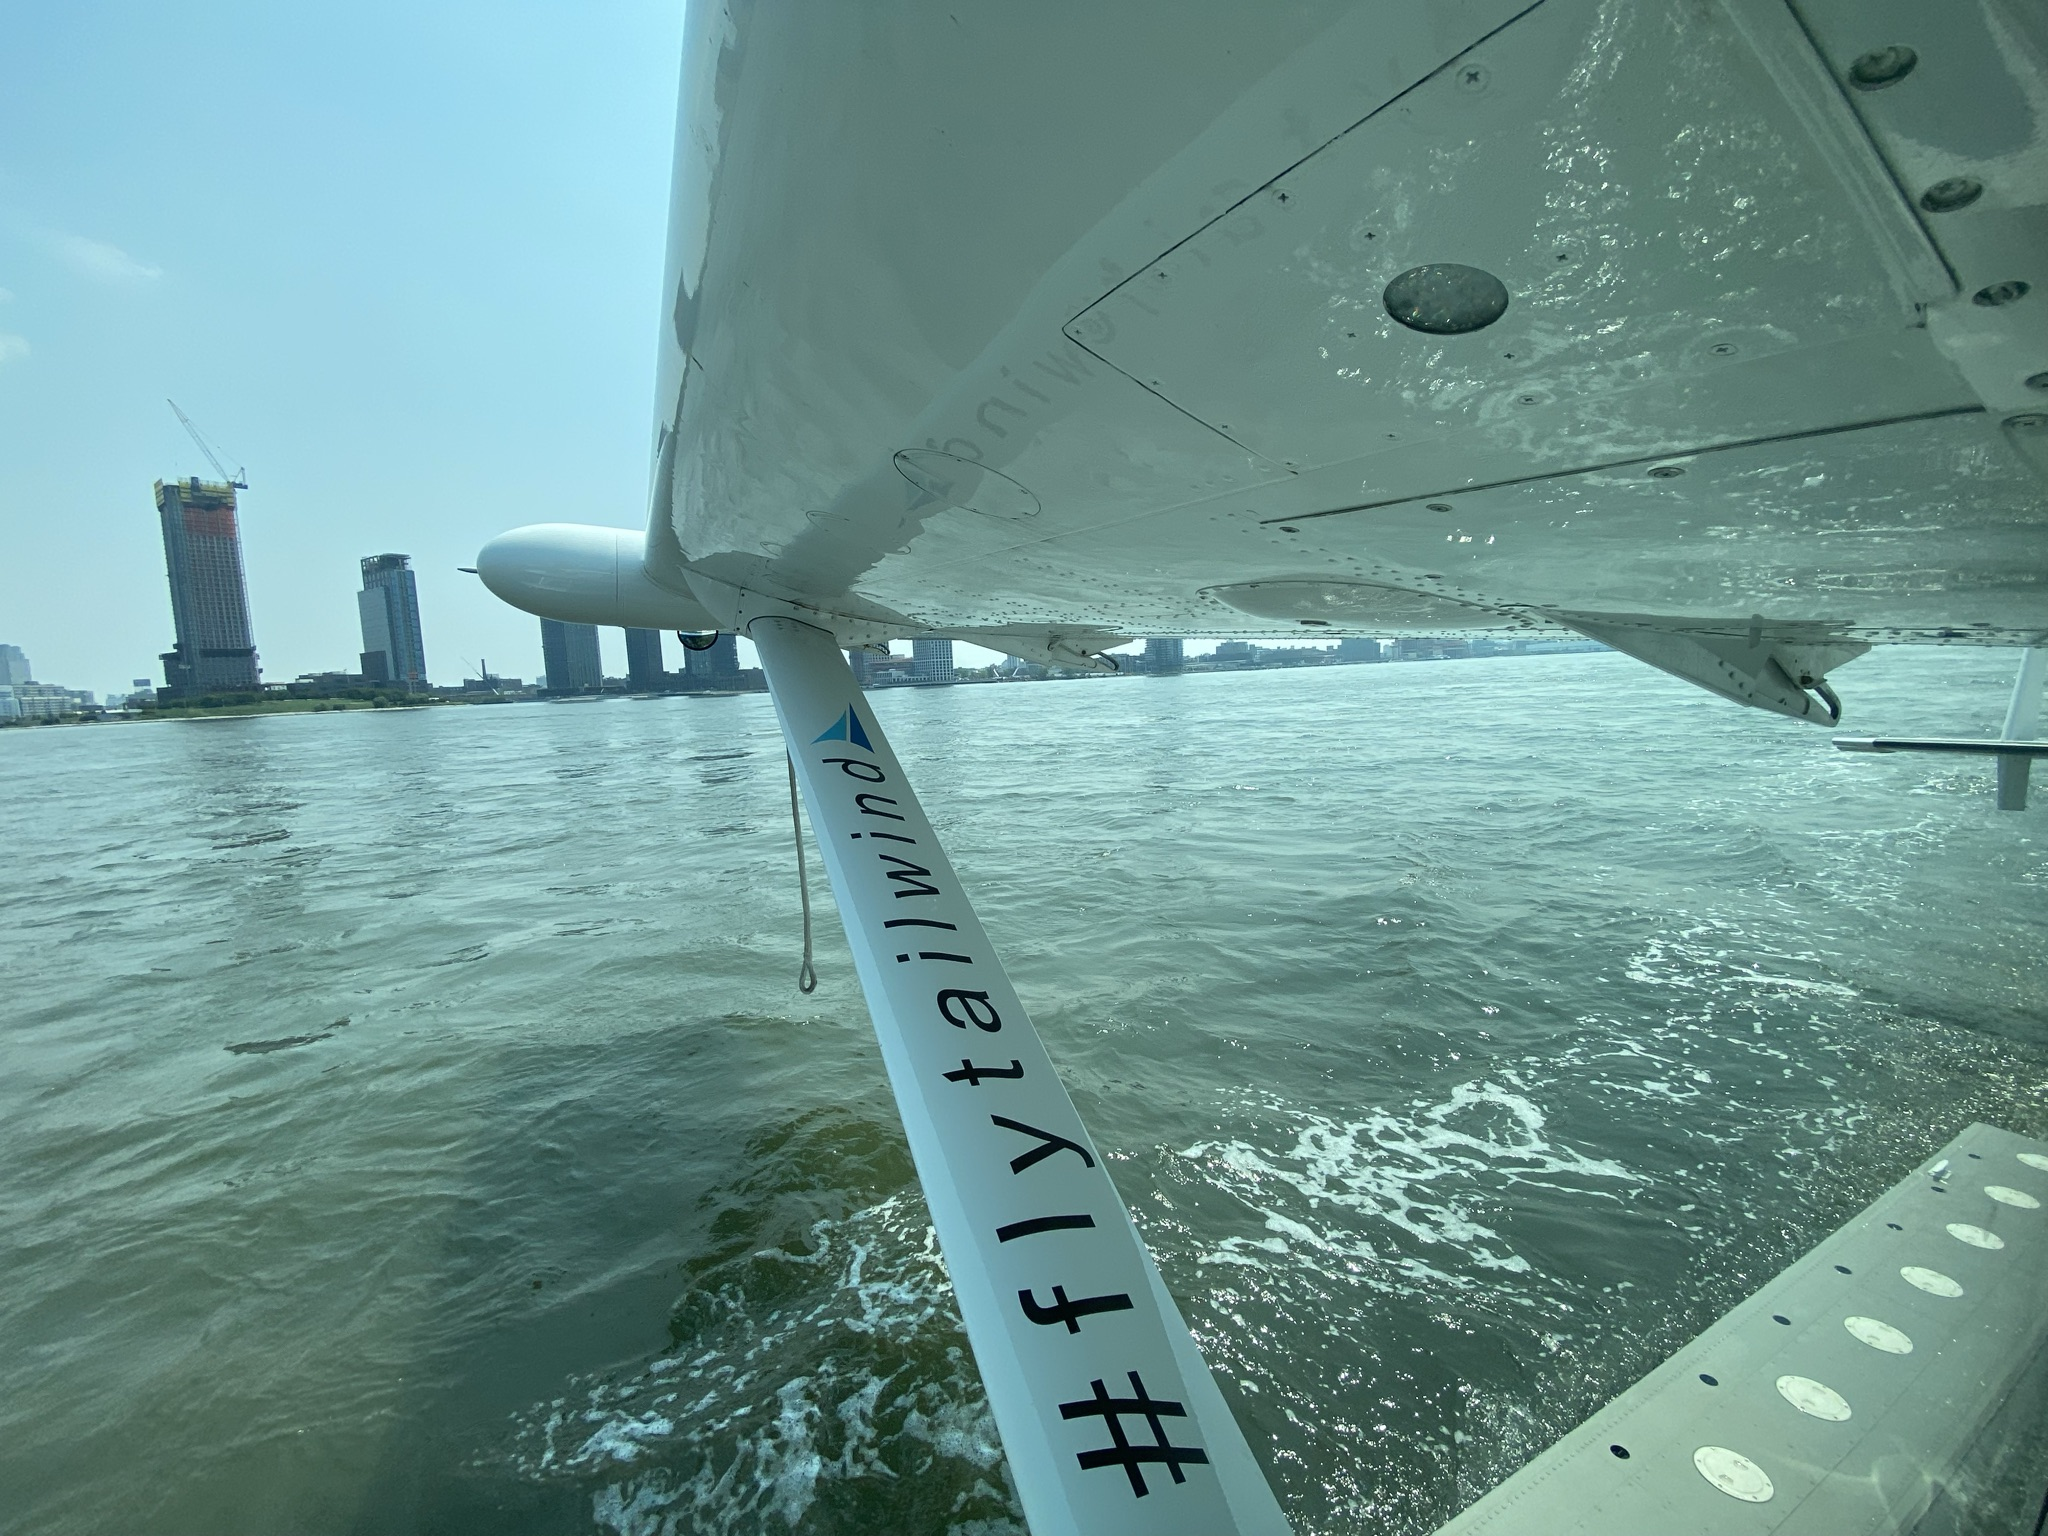 View from a Tailwind seaplane which has just landed on the water